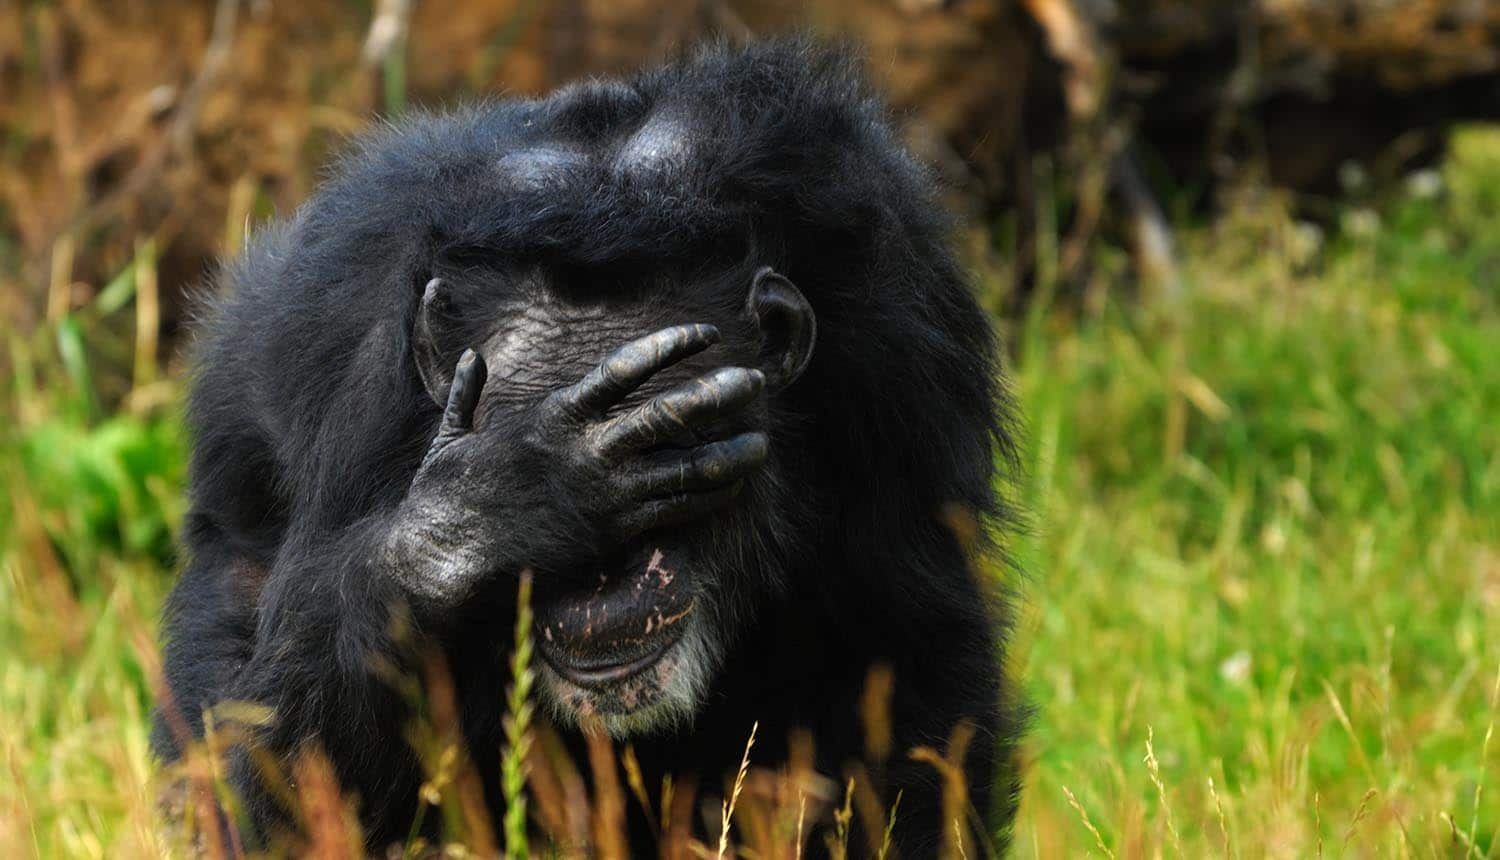 Close up of a chimpanzee covering face showing privacy infringement by facial recognition system